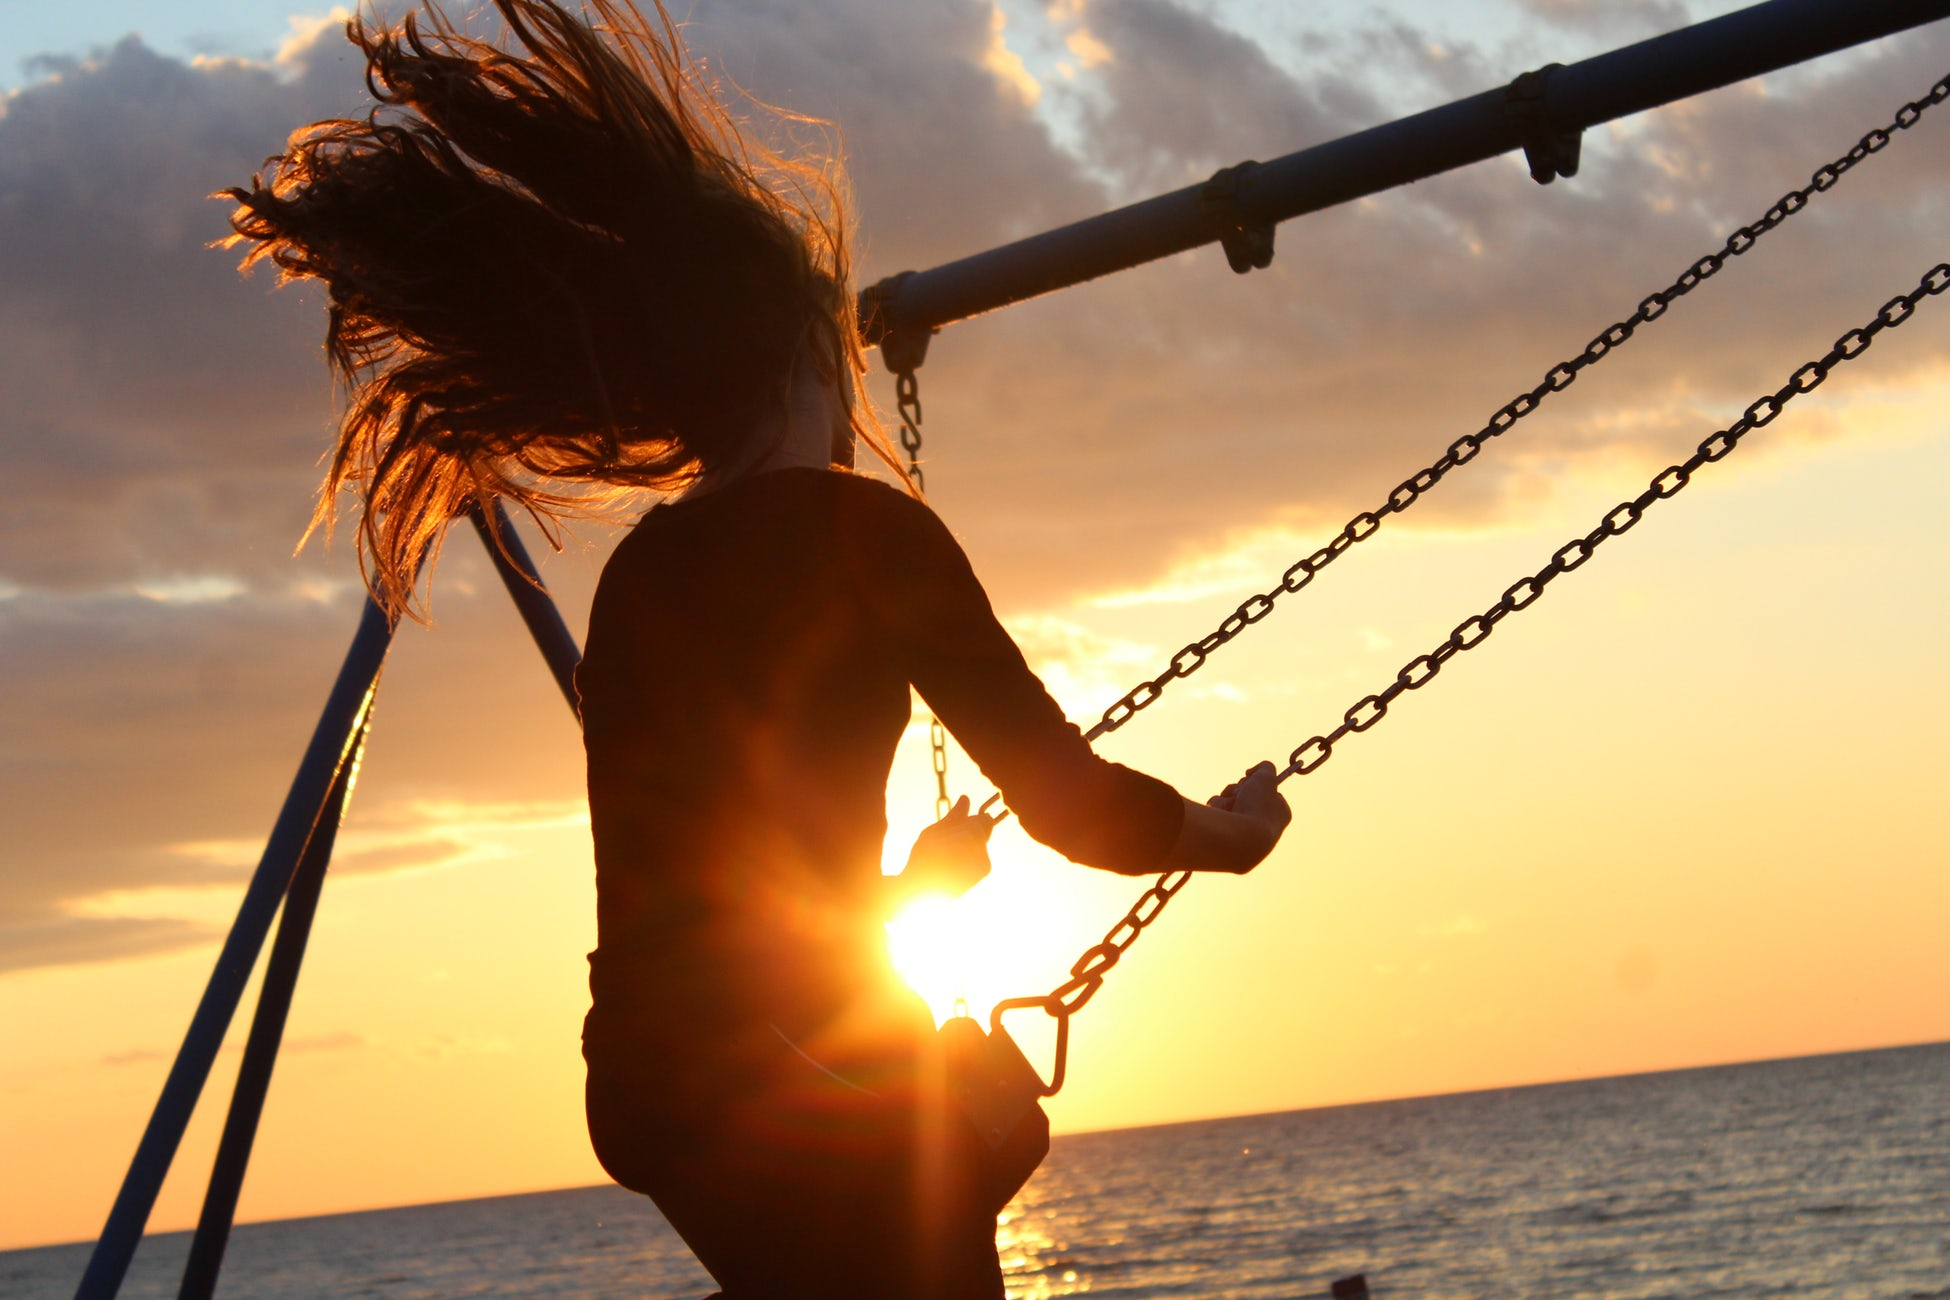 image: Woman swinging on a swing at sunset